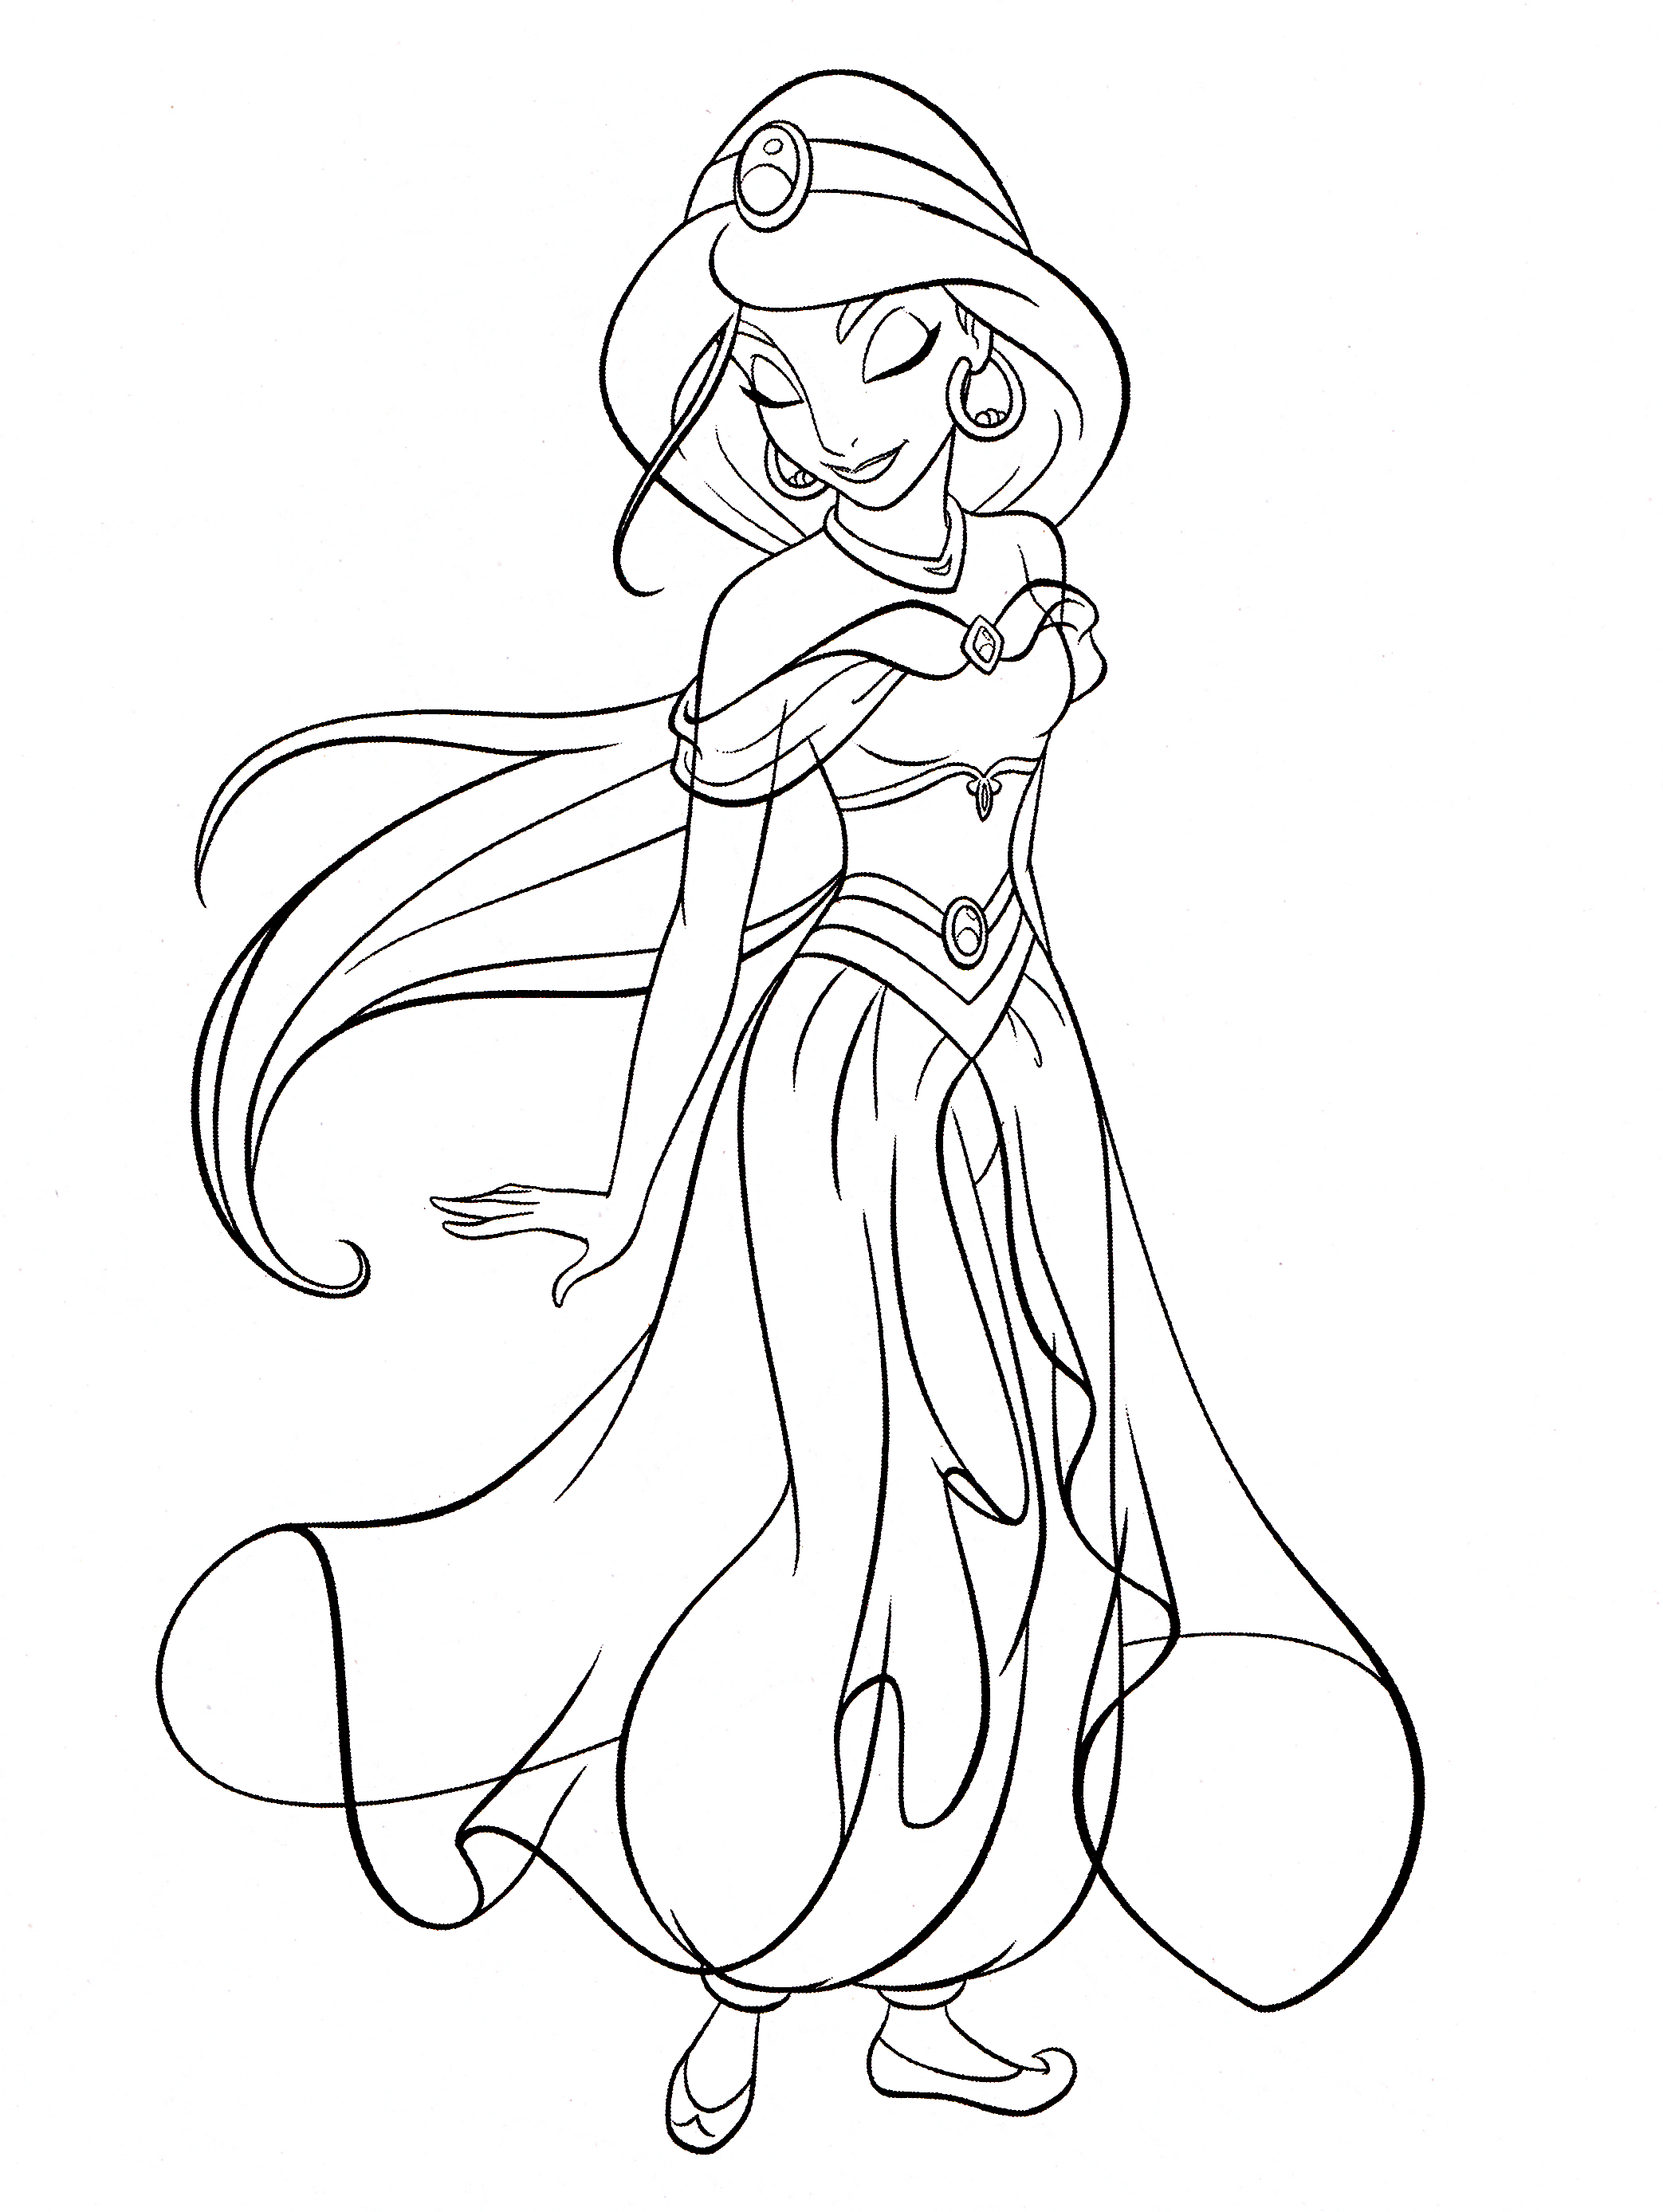 Disney Princess Jasmine Drawing at GetDrawings.com | Free for ...